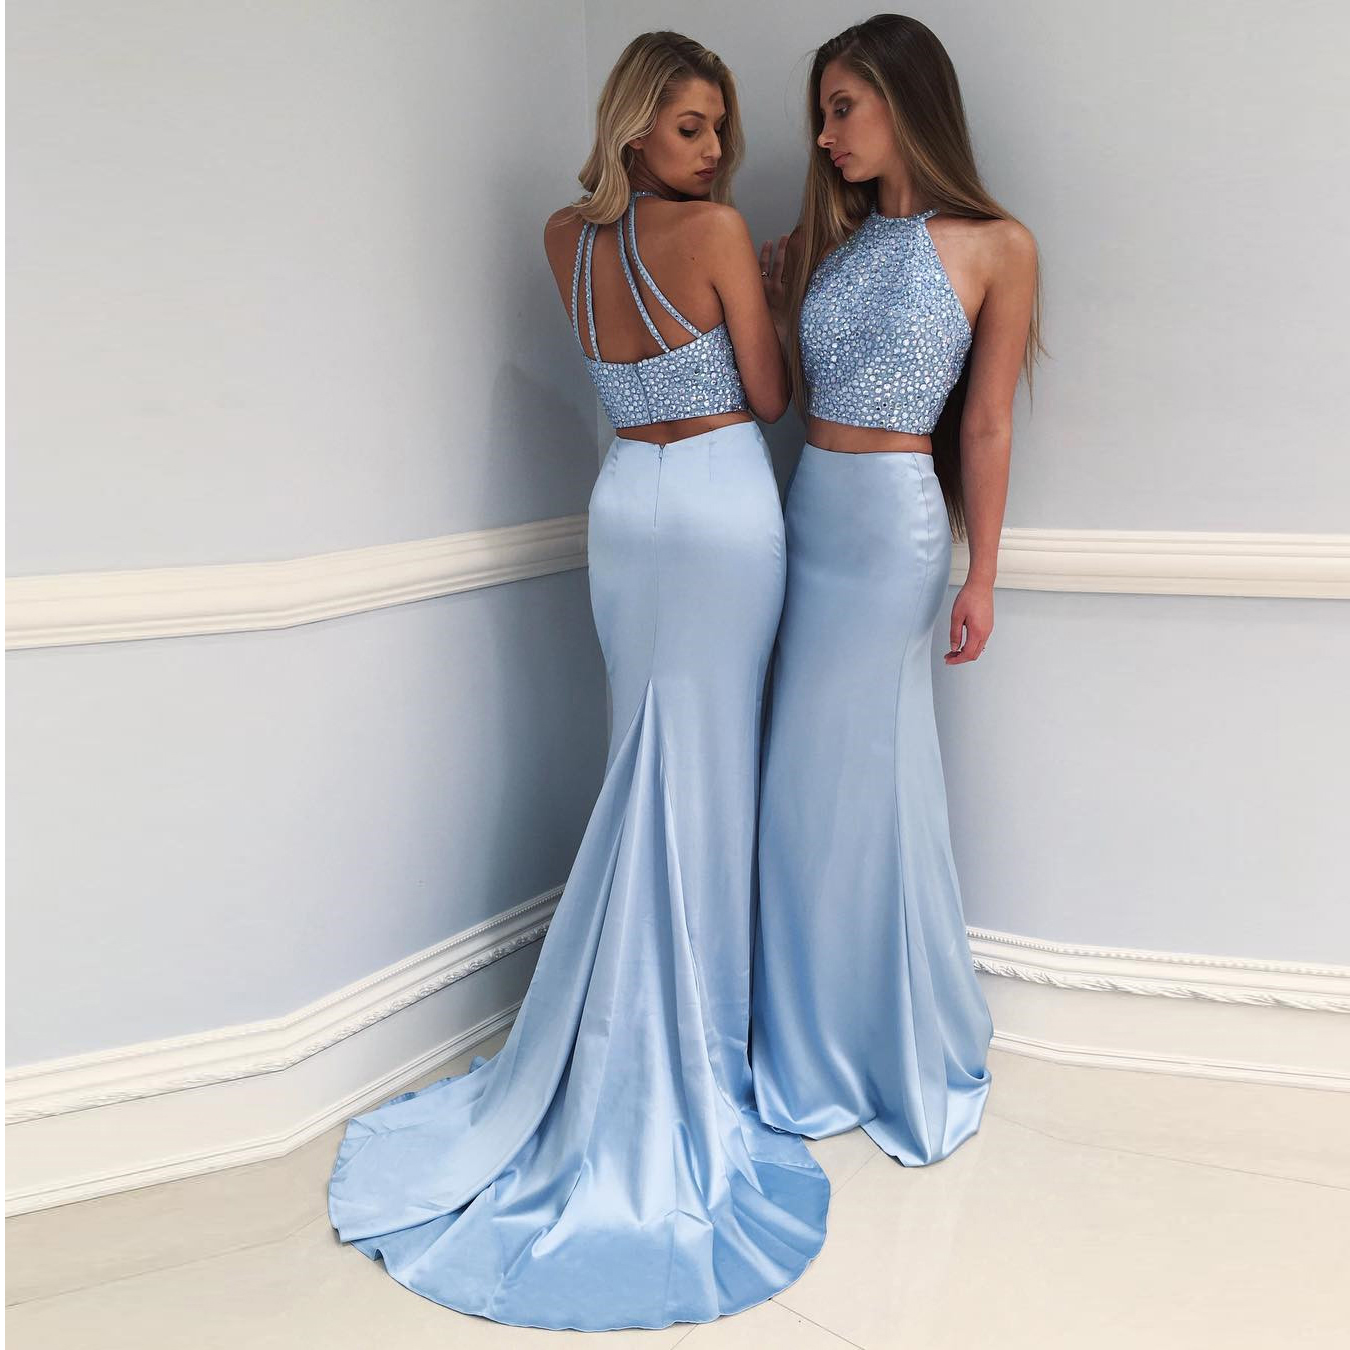 fddeddd1dfa Two Piece Prom Dress Light Blue